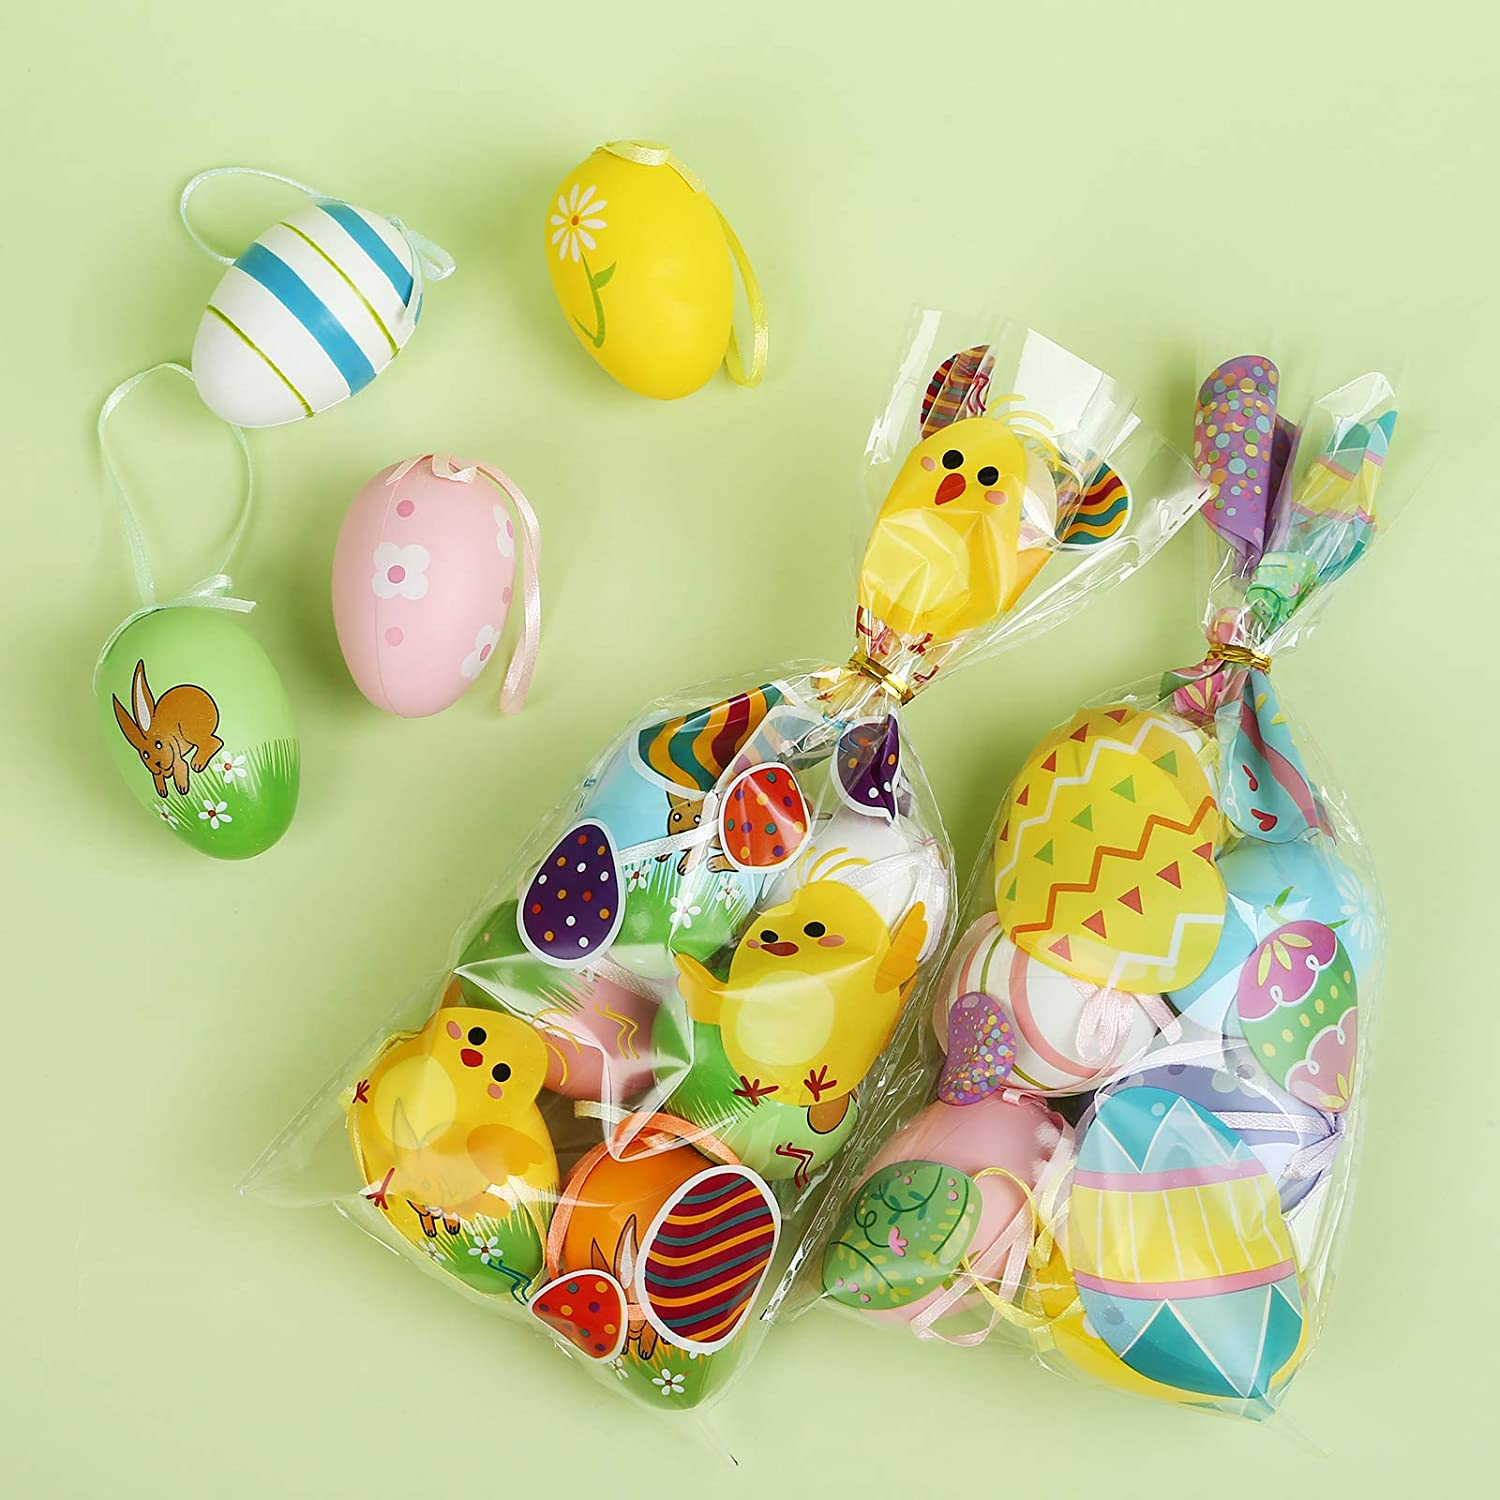 LIHAO 100 Pack Easter Treat Bags Cellophane Candy Bags Whit Twist Tie Cookie Bags for Easter Birthday Party Supplies